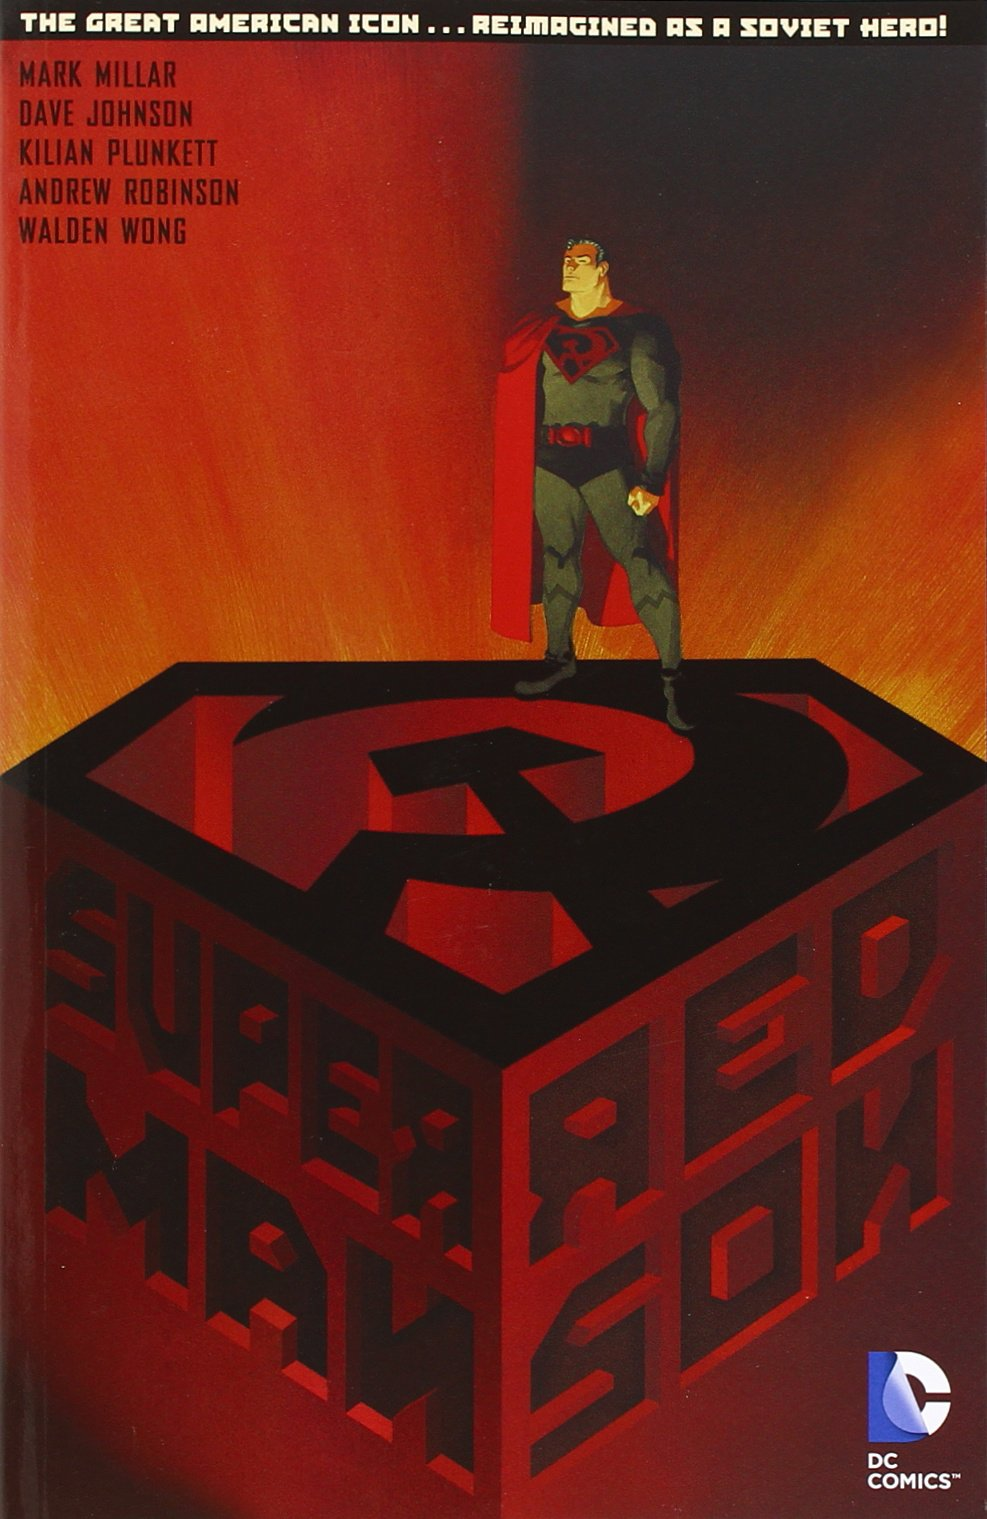 Amazon Com Superman Red Son 8601404298462 Millar Mark Johnson Dave Plunkett Kilian Books